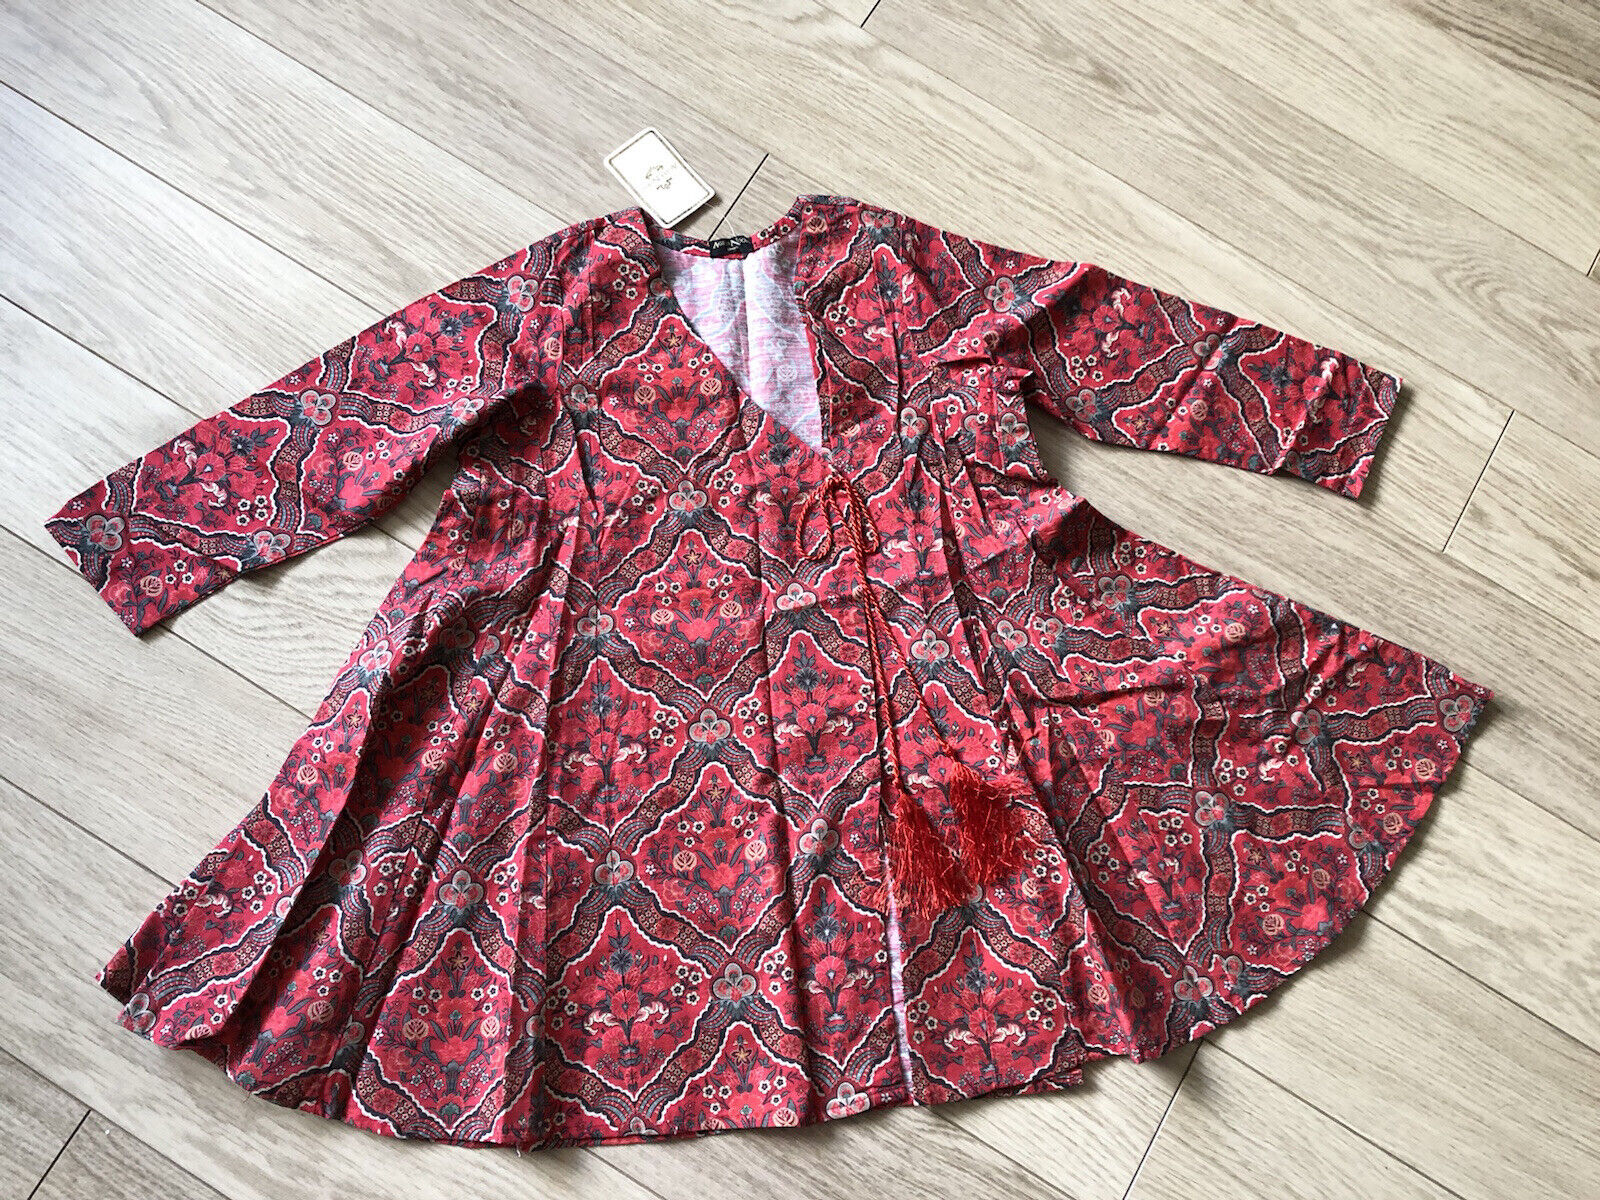 AGHA NOOR SIZE SMALL FROCK STYLE KURTA BRAND NEW